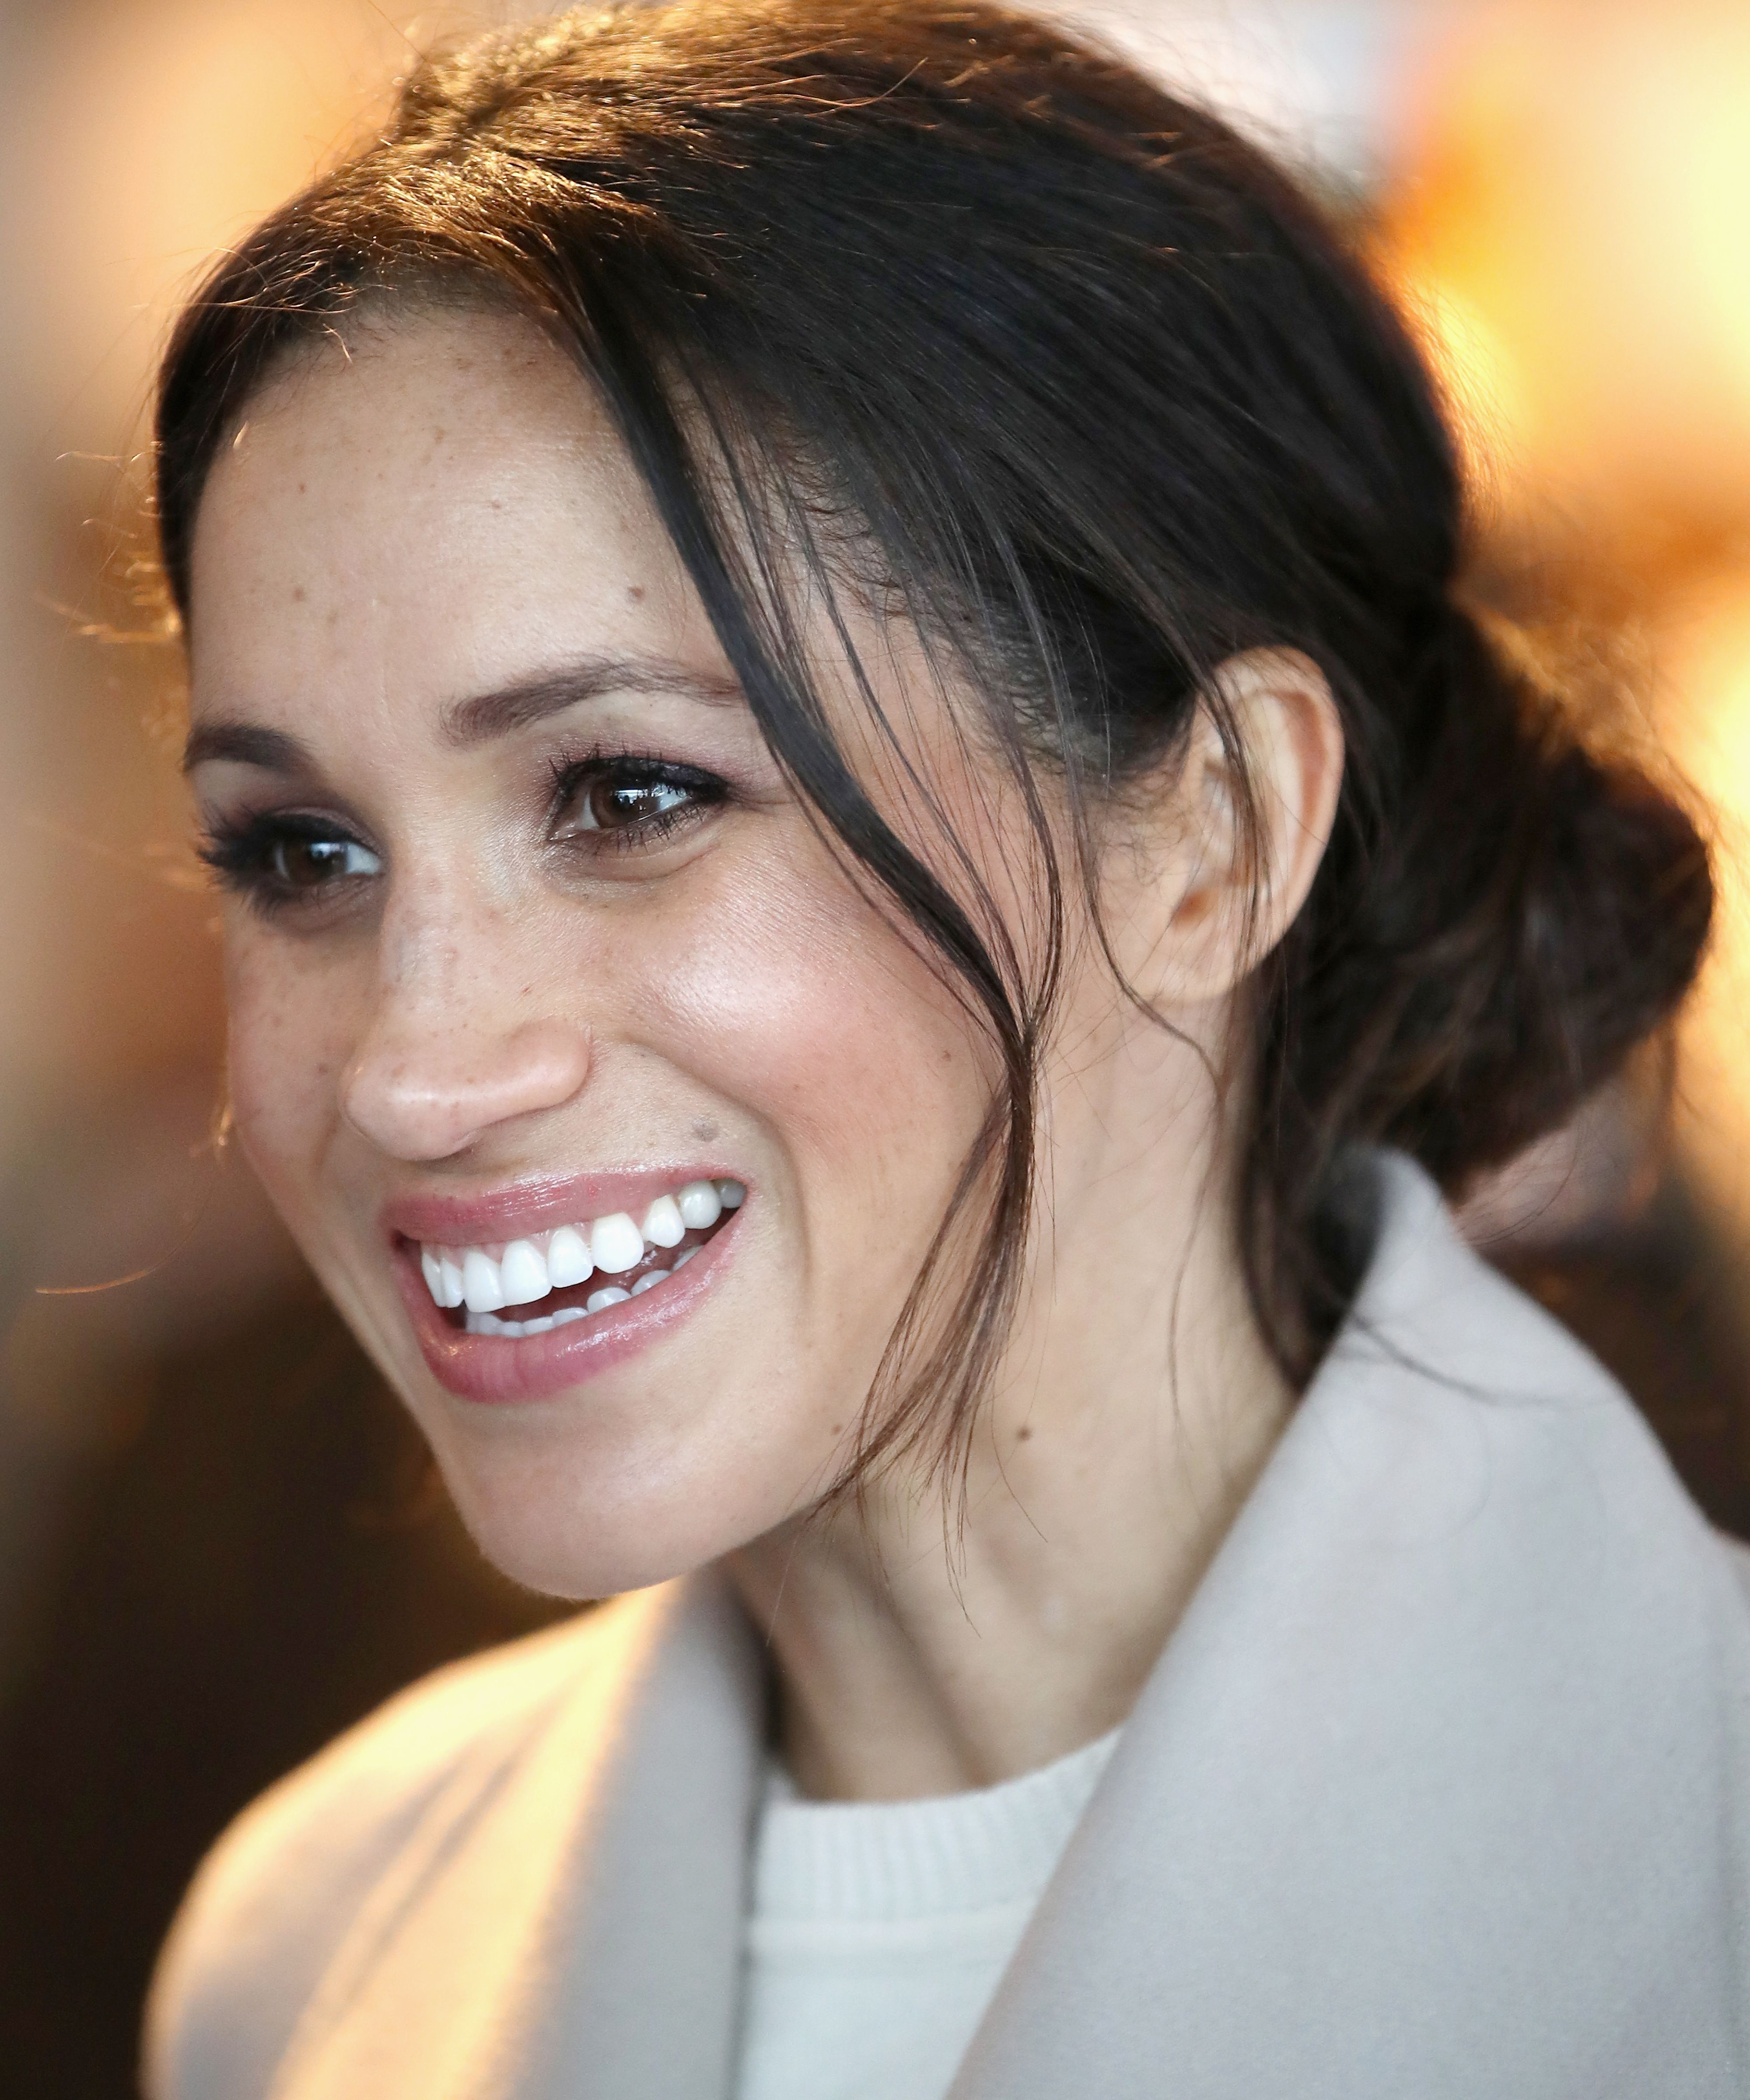 Meghan Markle Always Wears These 5 Beauty Trends & No One